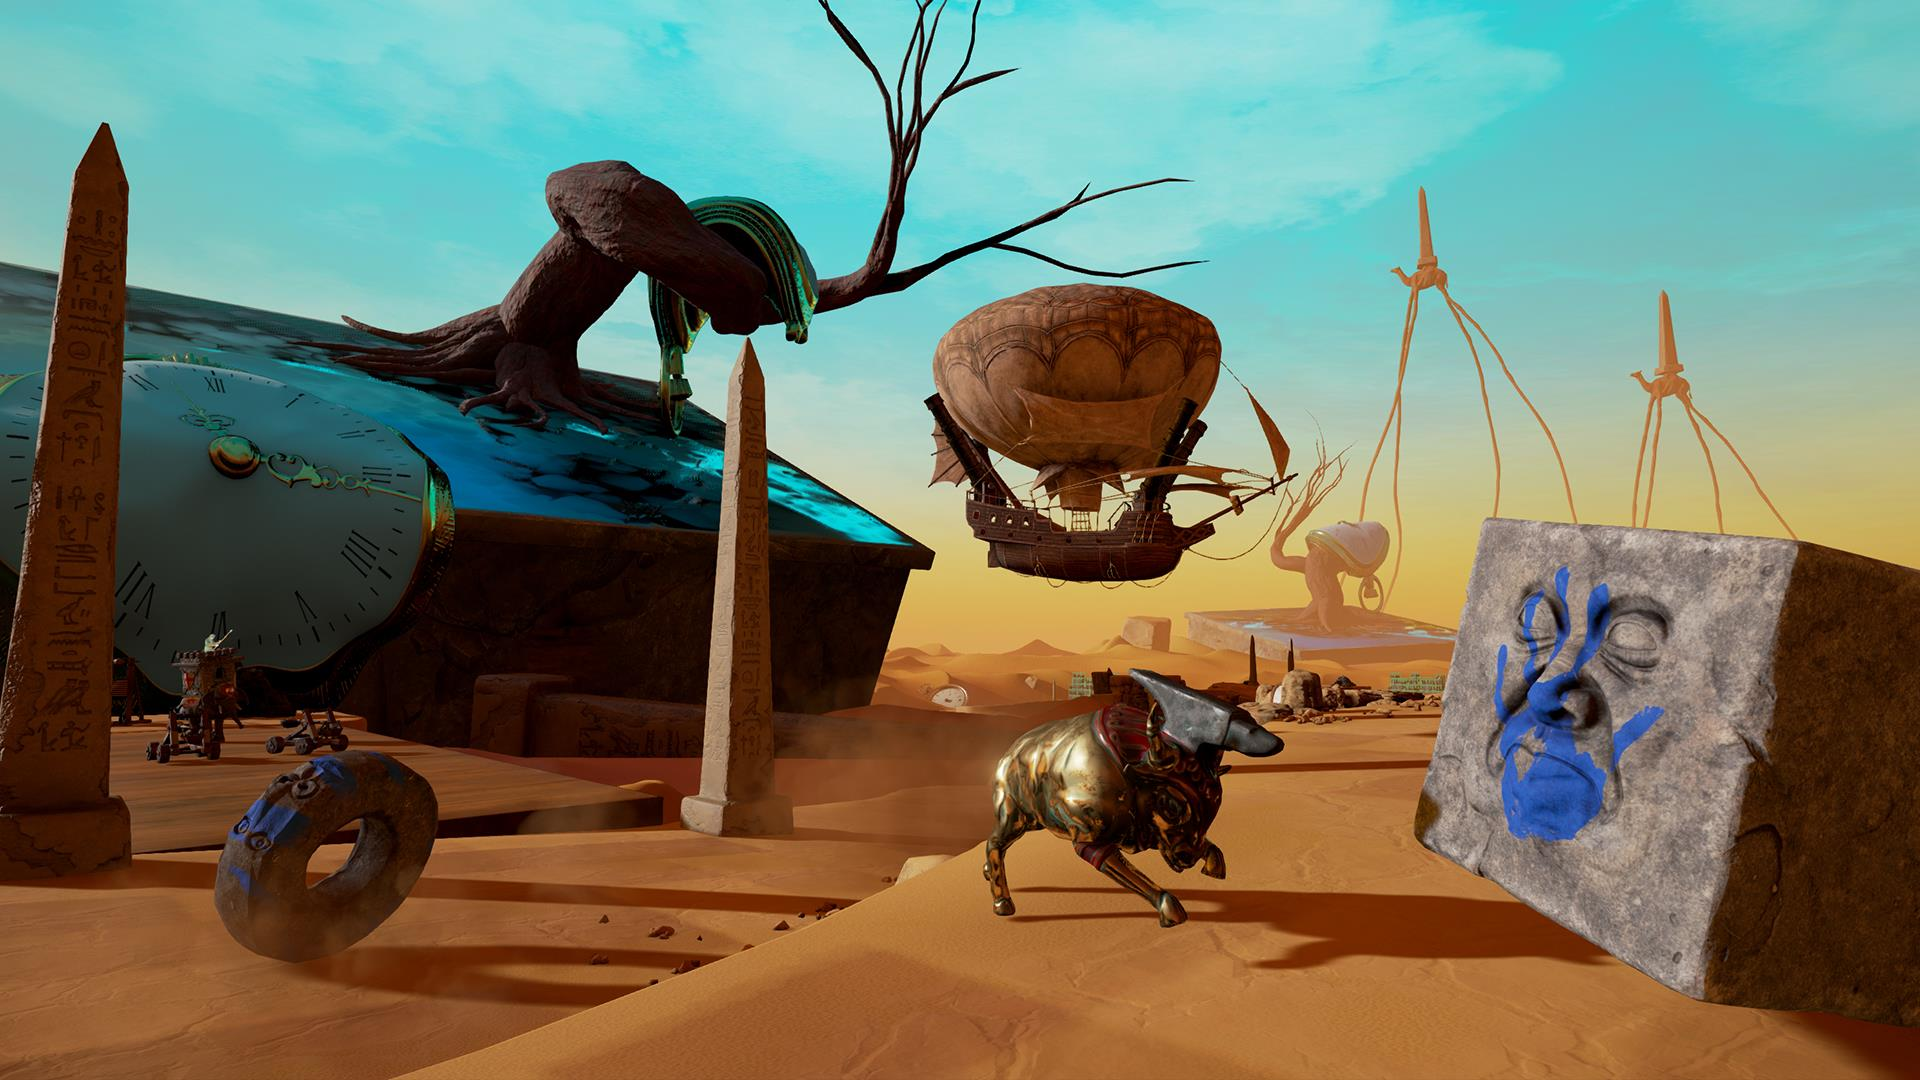 ue4 action/tower defense game rock of ages 2 announced, launches on